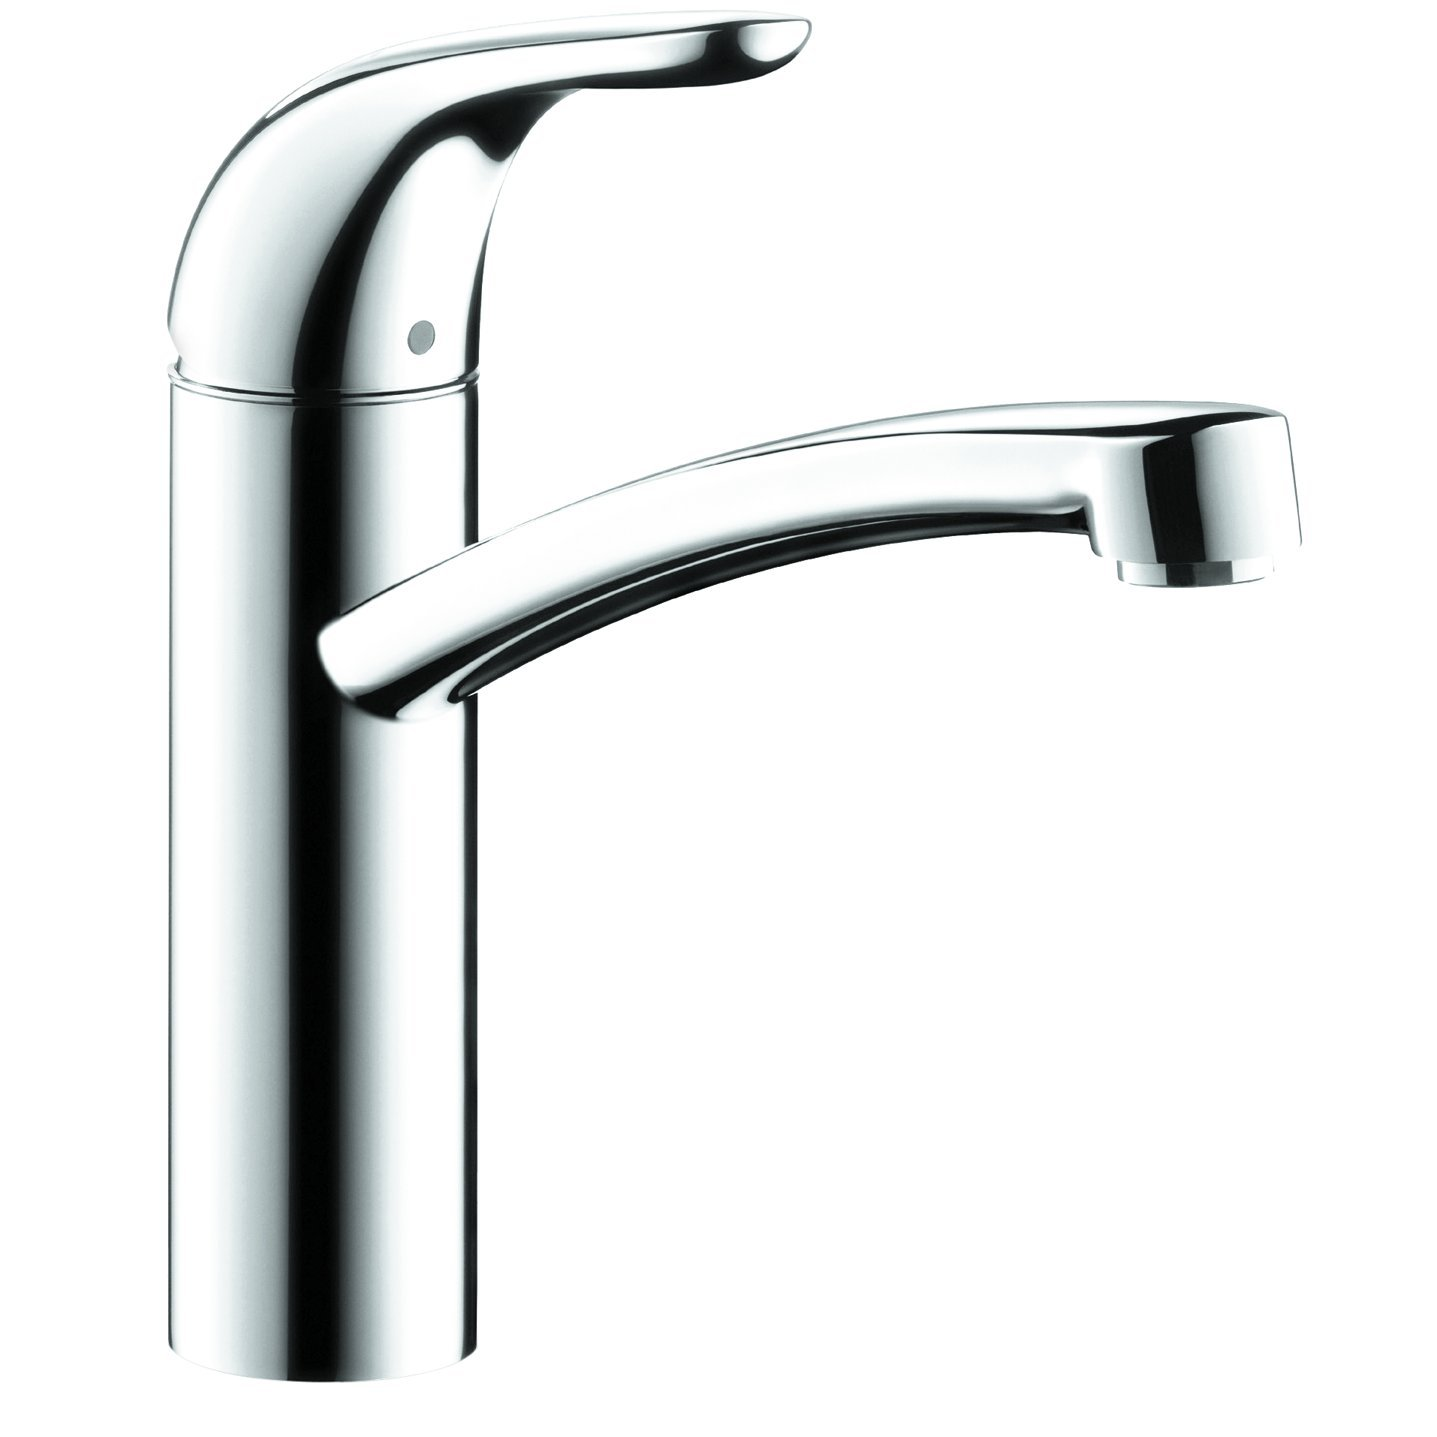 Hansgrohe 31780001 Focus E Kitchen Faucet, Chrome by Hansgrohe